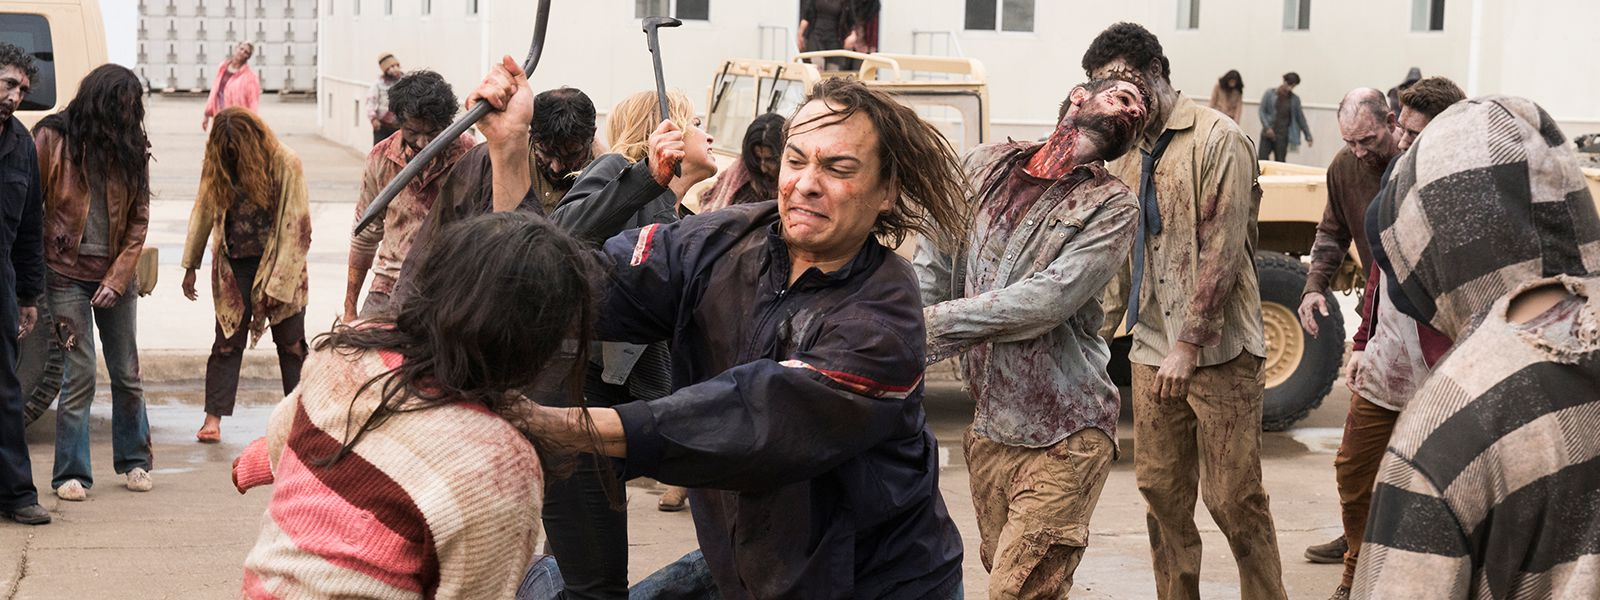 fear-the-walking-dead-episode-301-nick-dillane-post-800×600